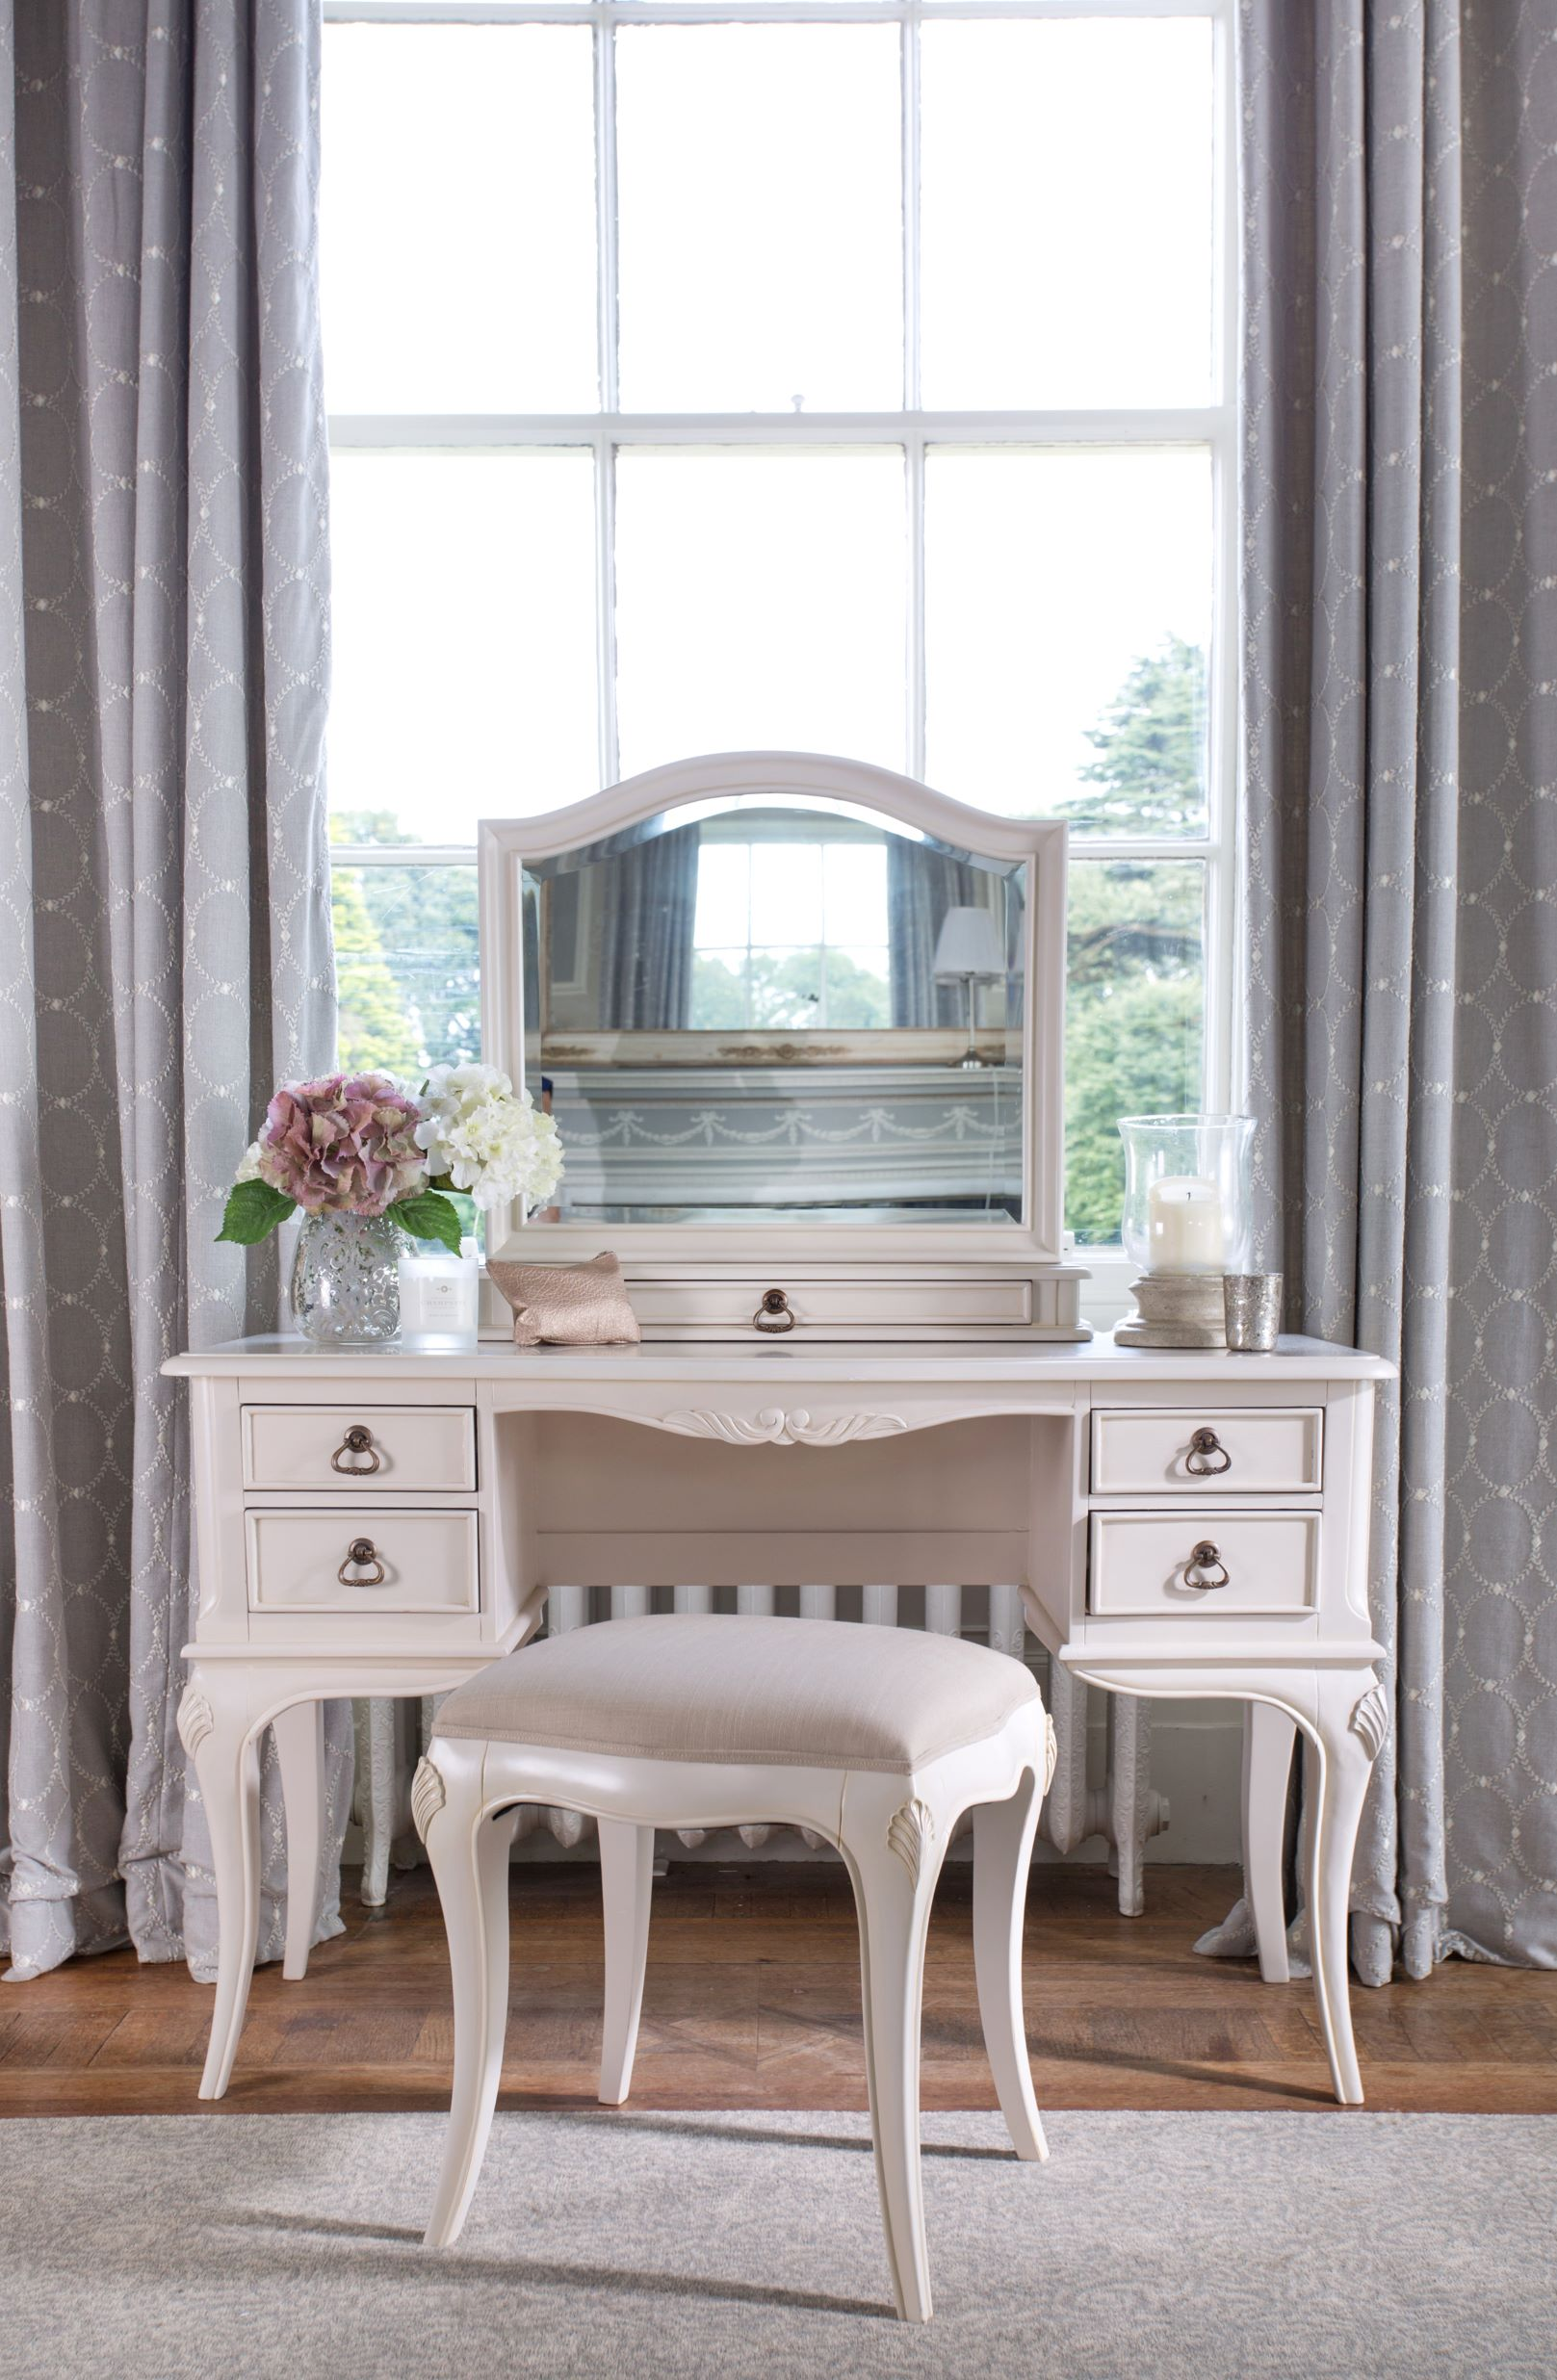 CHATEAU DRESSING TABLE - L120cm x D50cm x H141cm